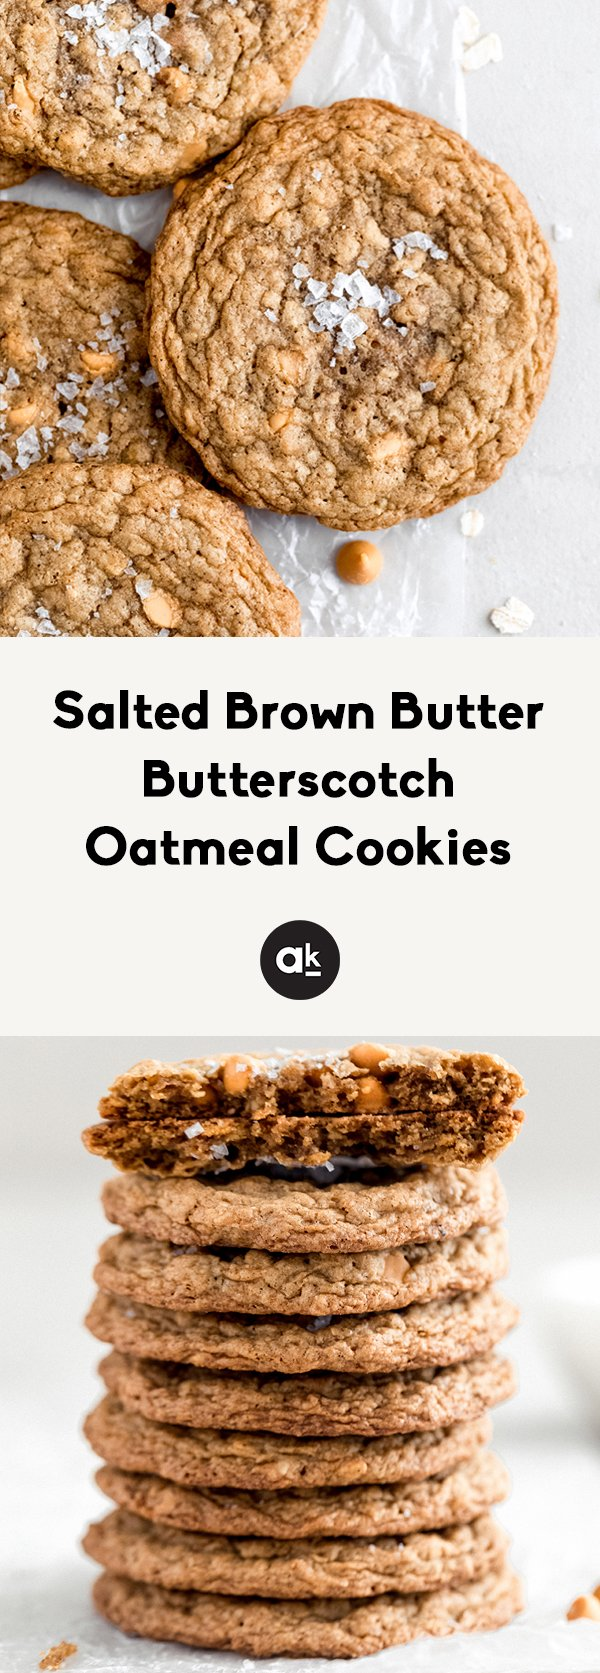 Incredible sweet and salty brown butter butterscotch oatmeal cookies with nutty, caramel flavors in every bite thanks to the brown butter! This magical cookie is baked with cornflakes for a delicious texture and will wow anyone.